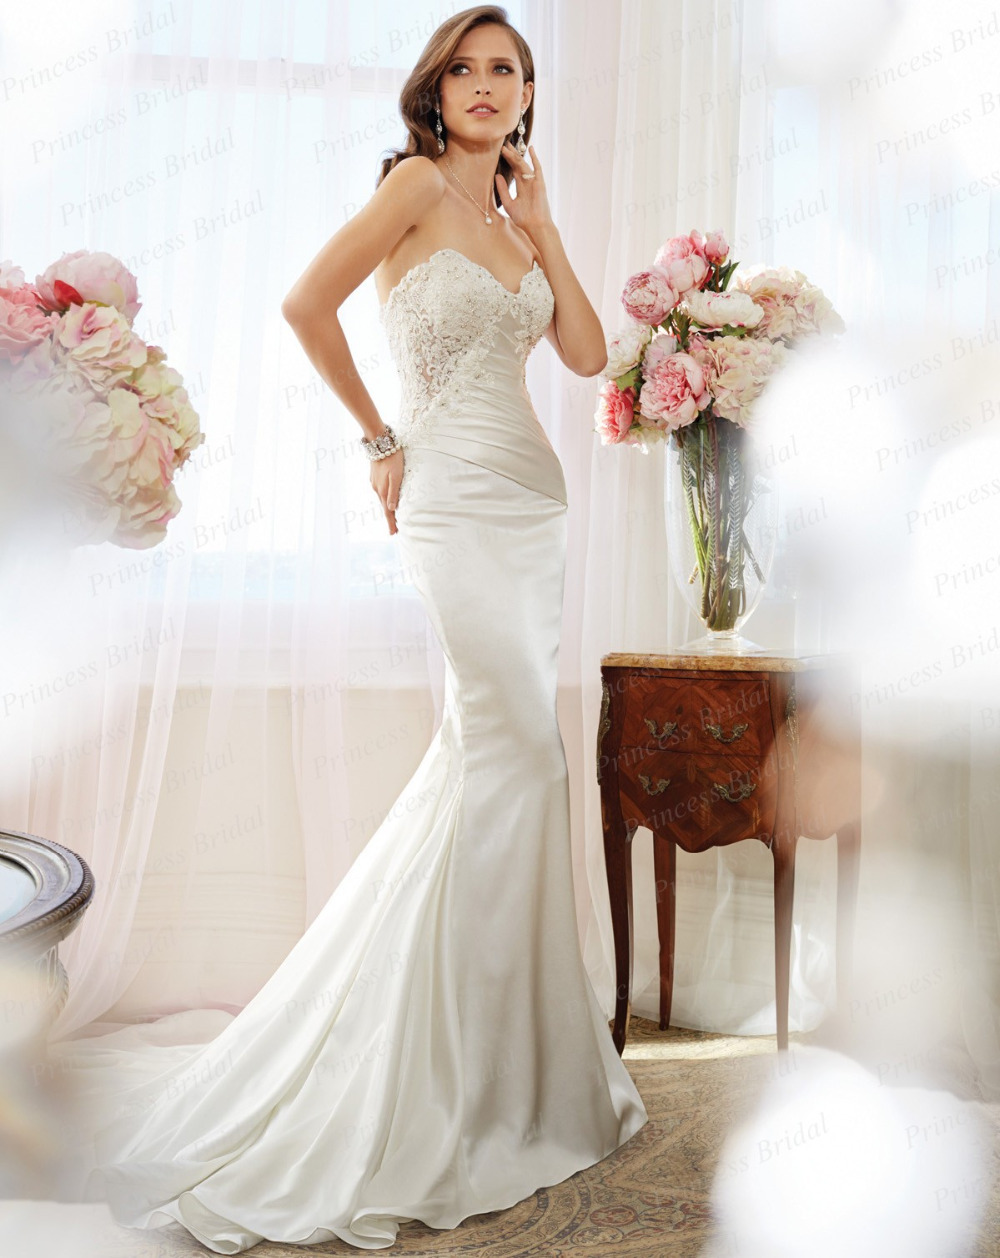 Dress up meaning - Free Shipping 2015 New Images Fishtail Sweetheart Lace Up Back Sweep Train Italian Style Wedding Gown